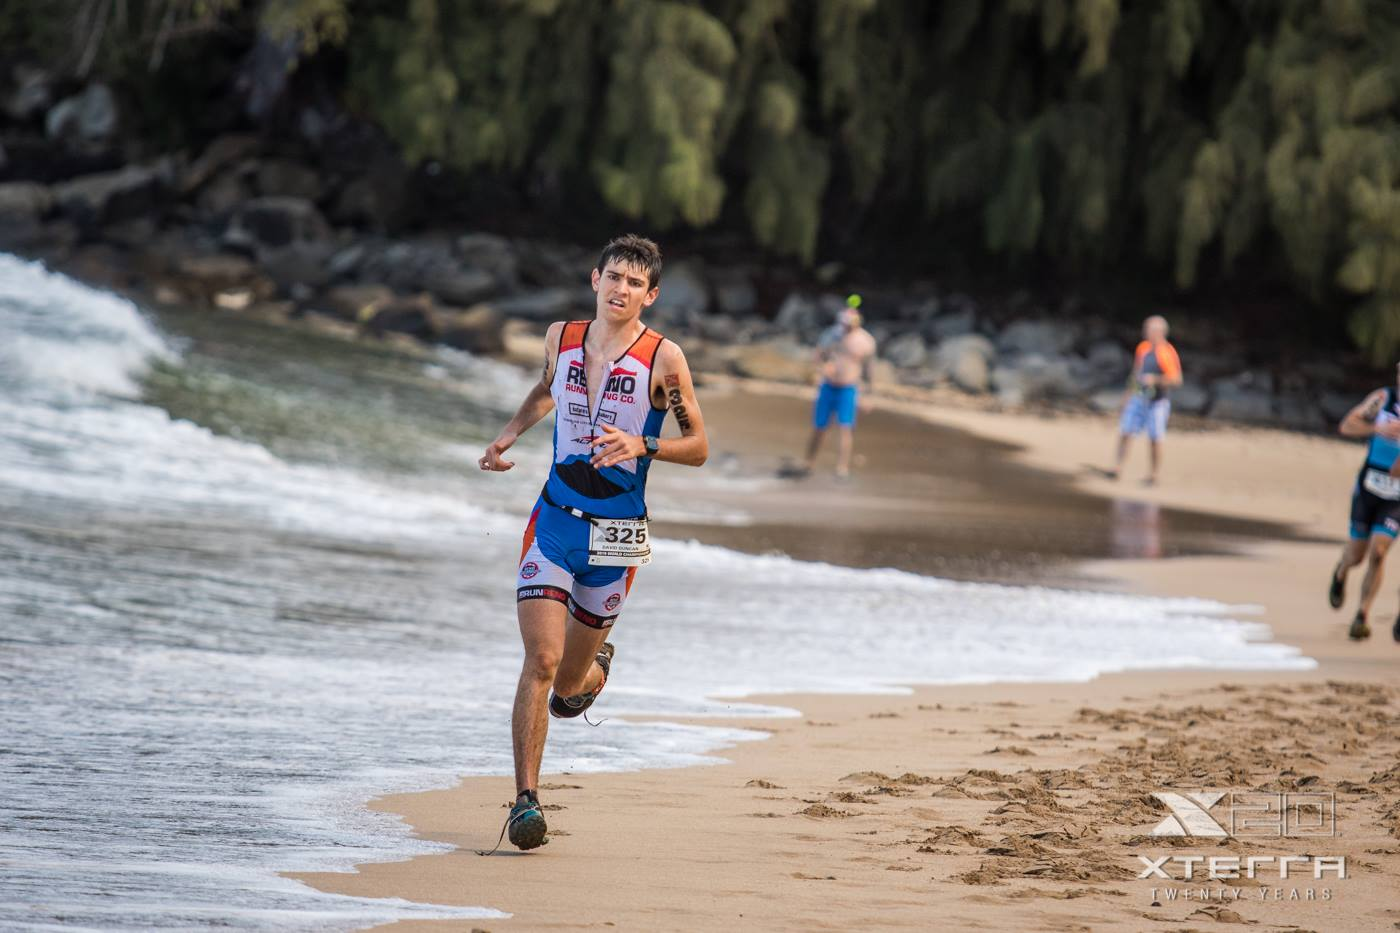 XTERRA_WORLD_CHAMPIONSHIP_2015_00063